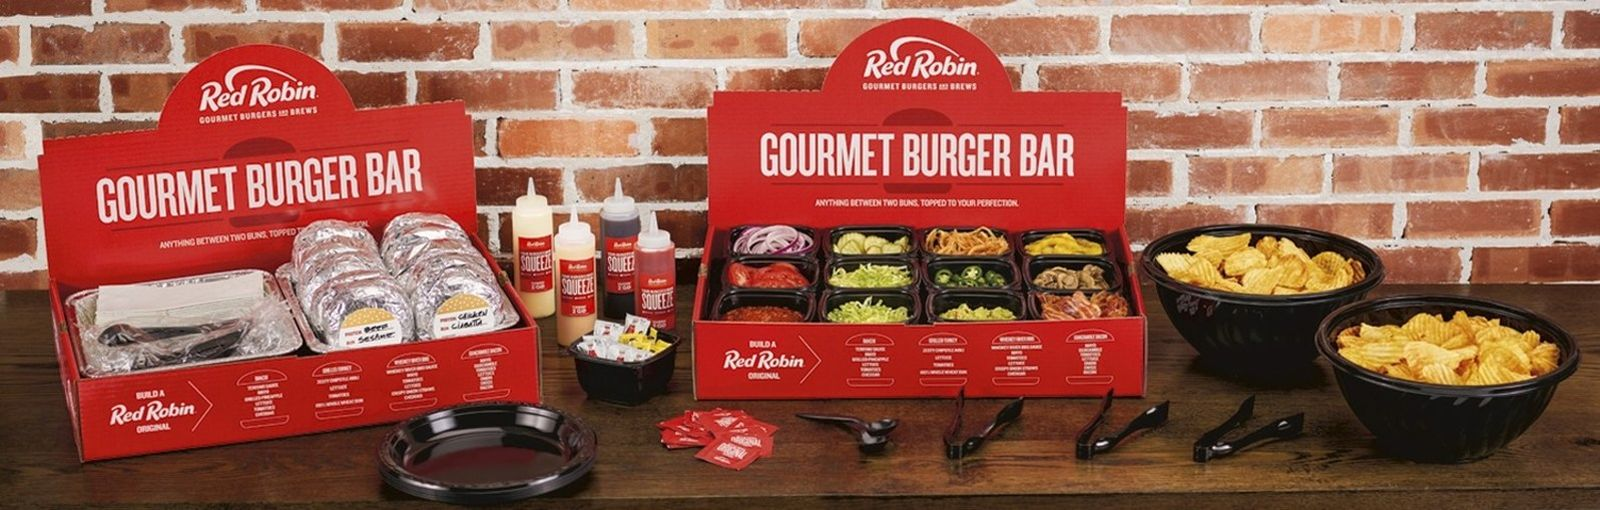 Red Robin Gourmet Burgers and Brews Celebrates Friendsgiving with Special Gourmet Turkey Burger Bar Promotion